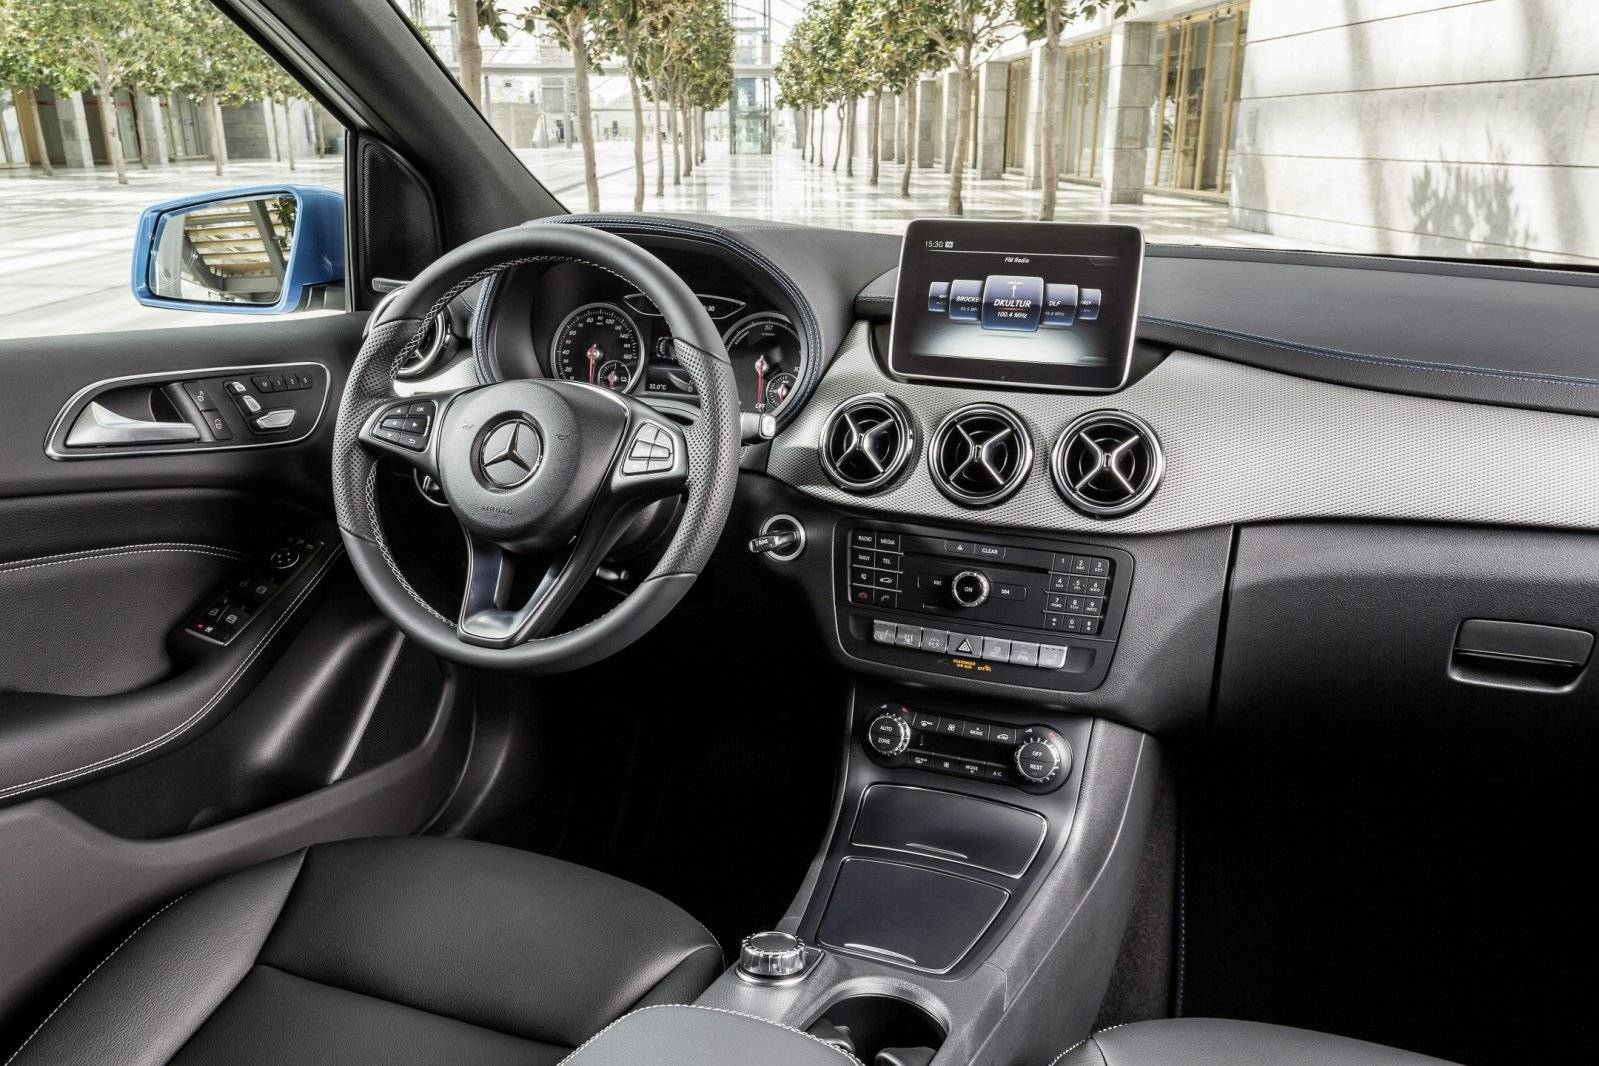 test mercedes benz b klasse electric drive autotests. Black Bedroom Furniture Sets. Home Design Ideas